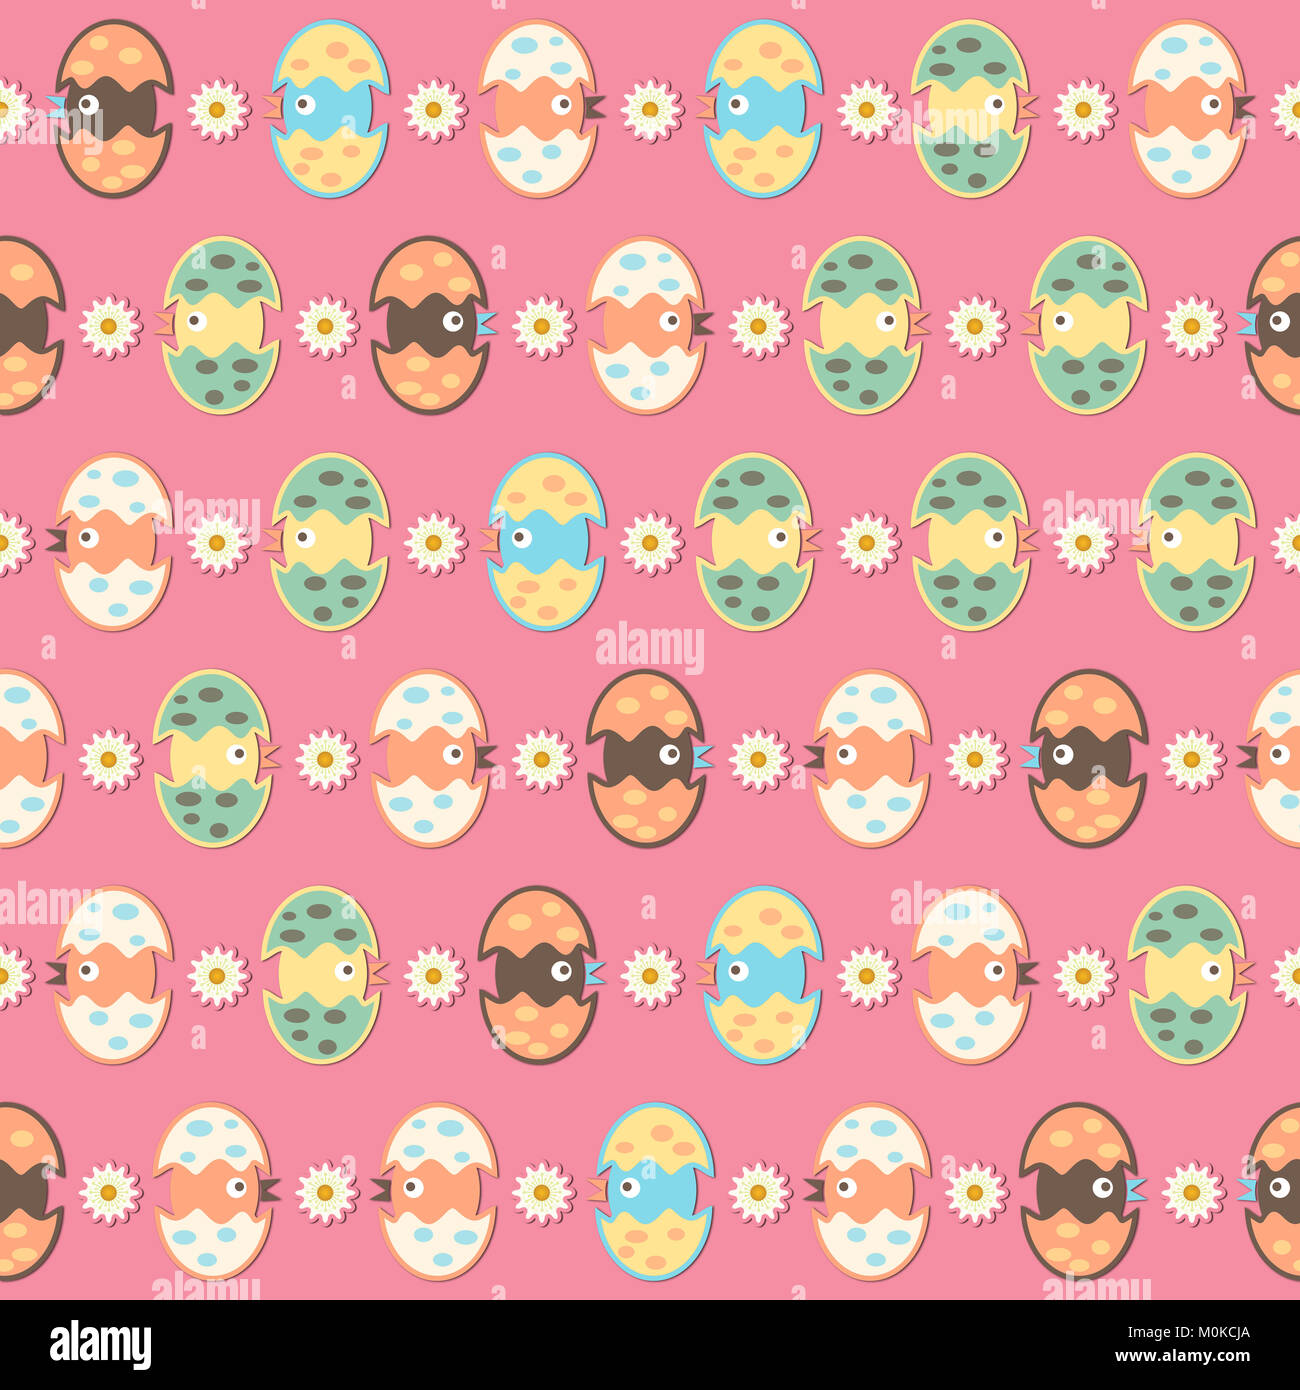 Cute hatched birds pattern on a pink background. Digital art for children. Stock Photo